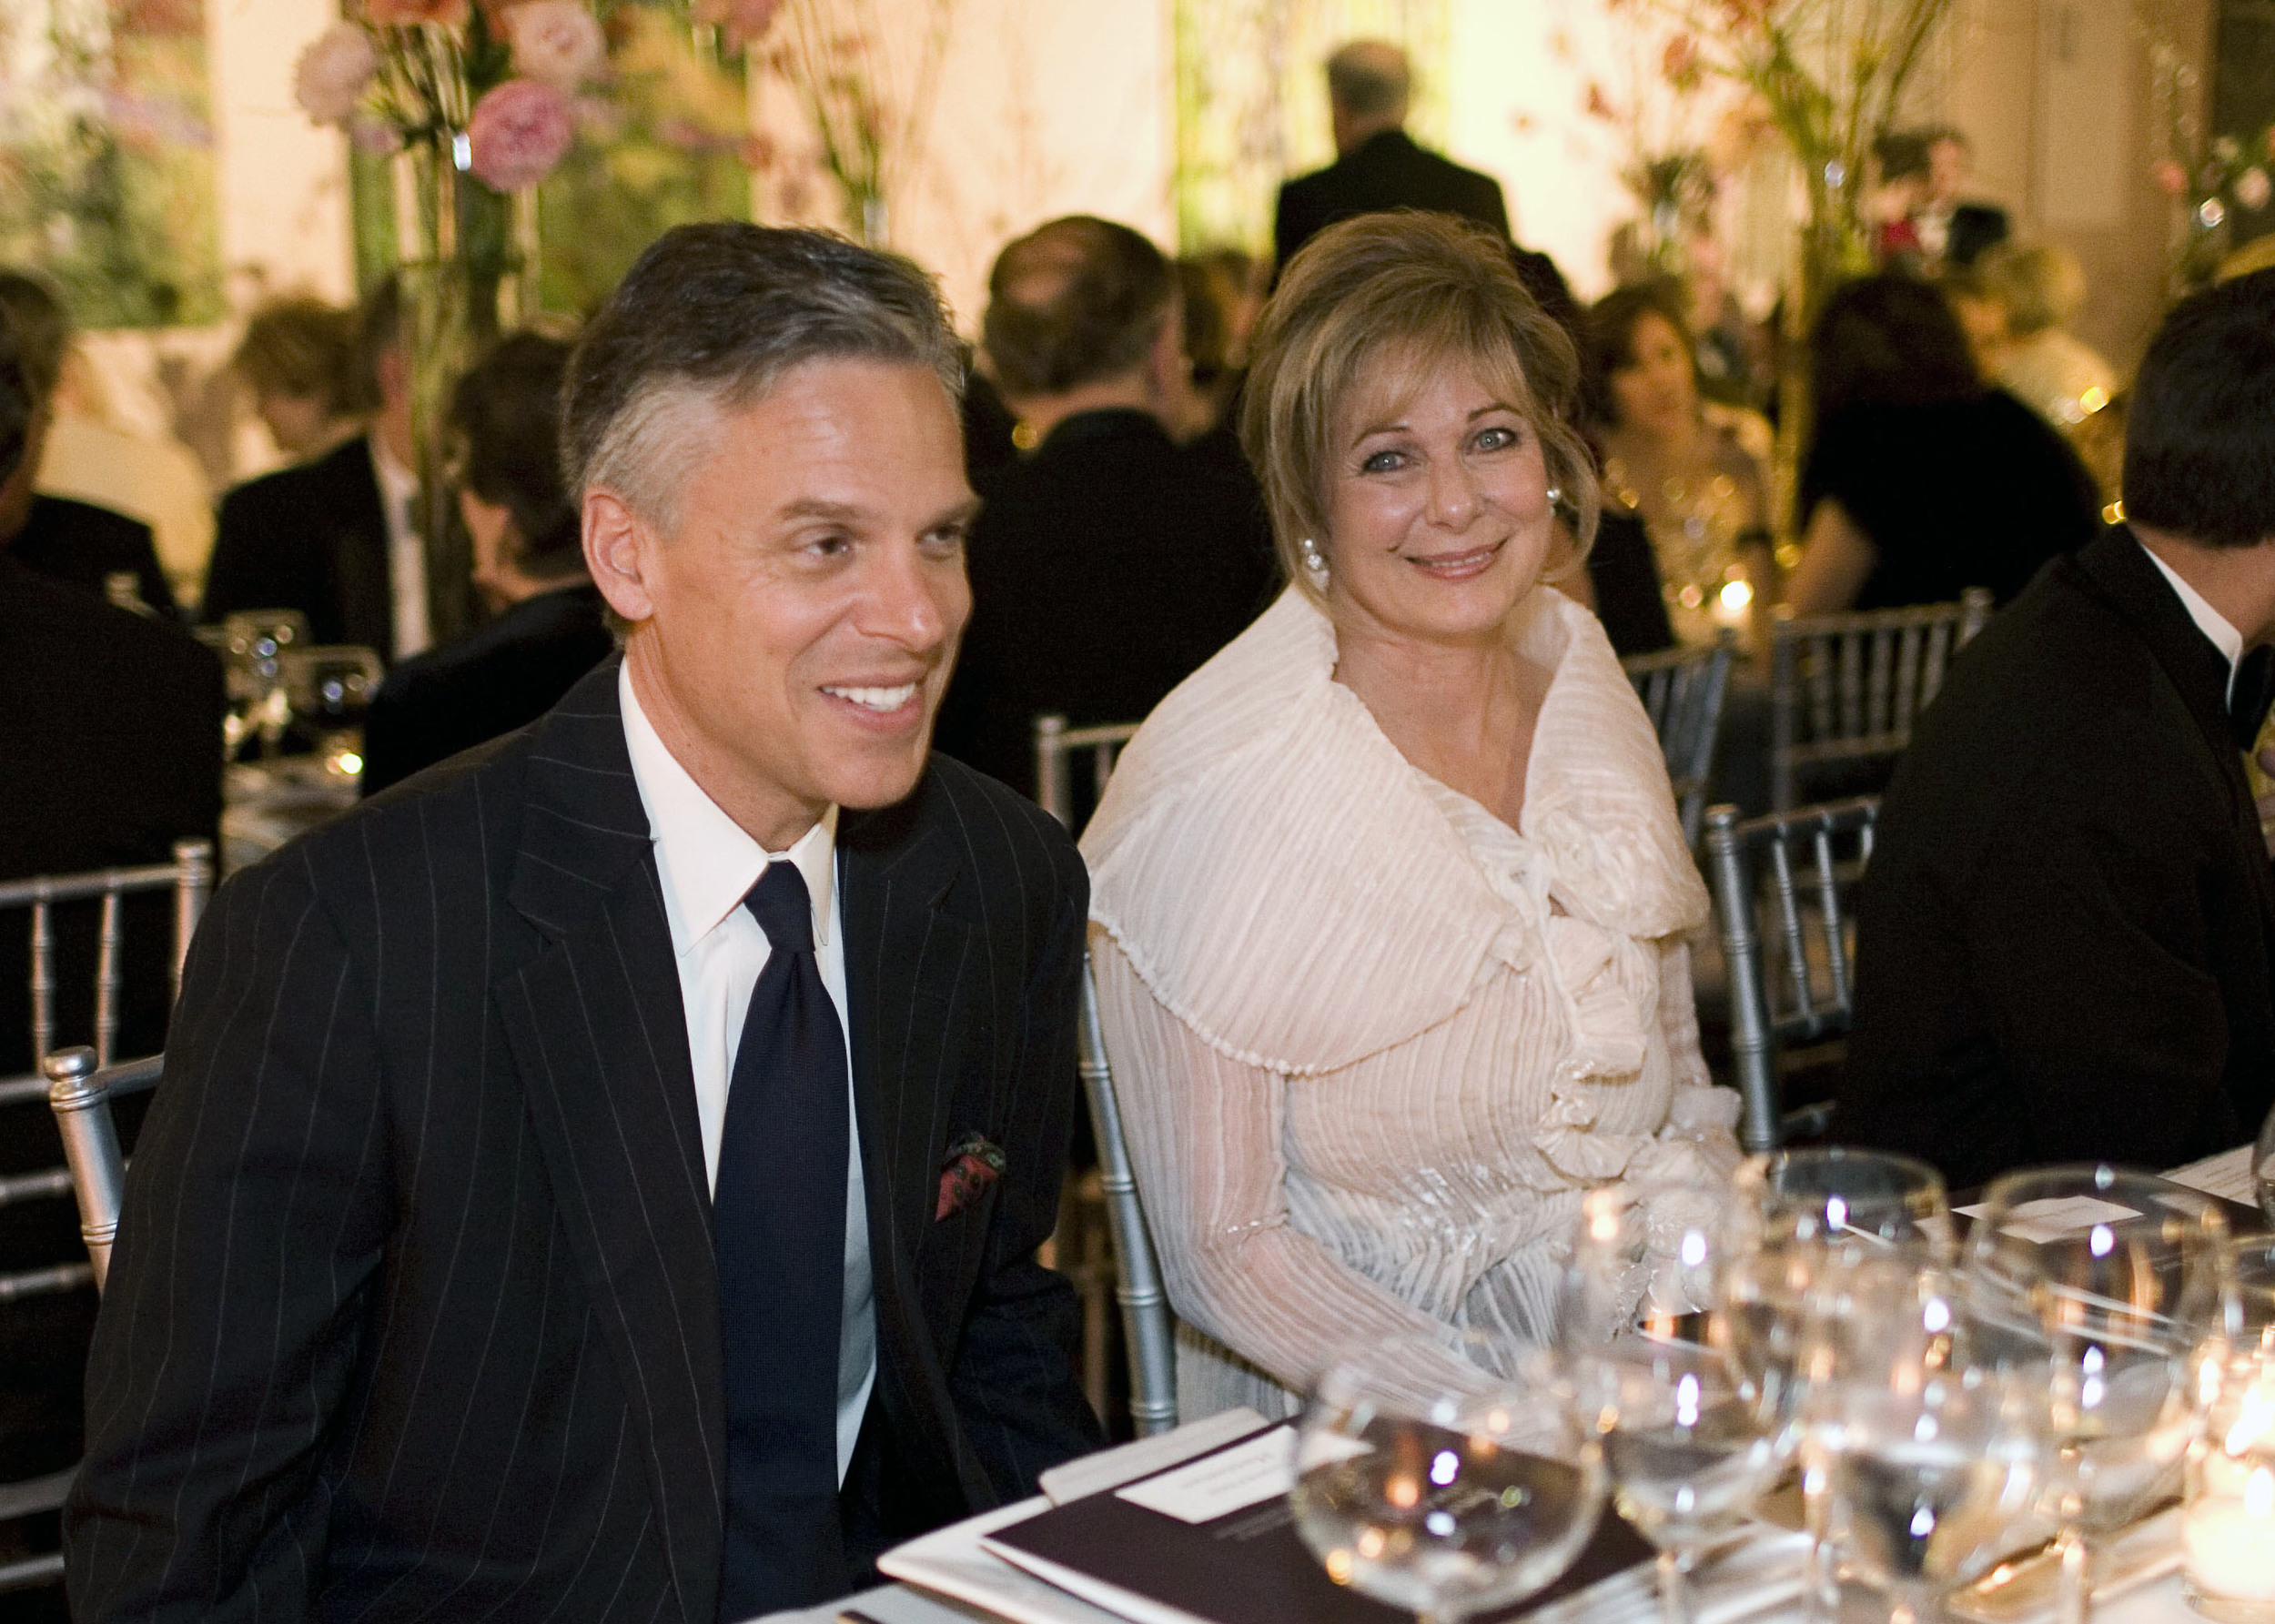 Susan and Gov. Jon Huntsman